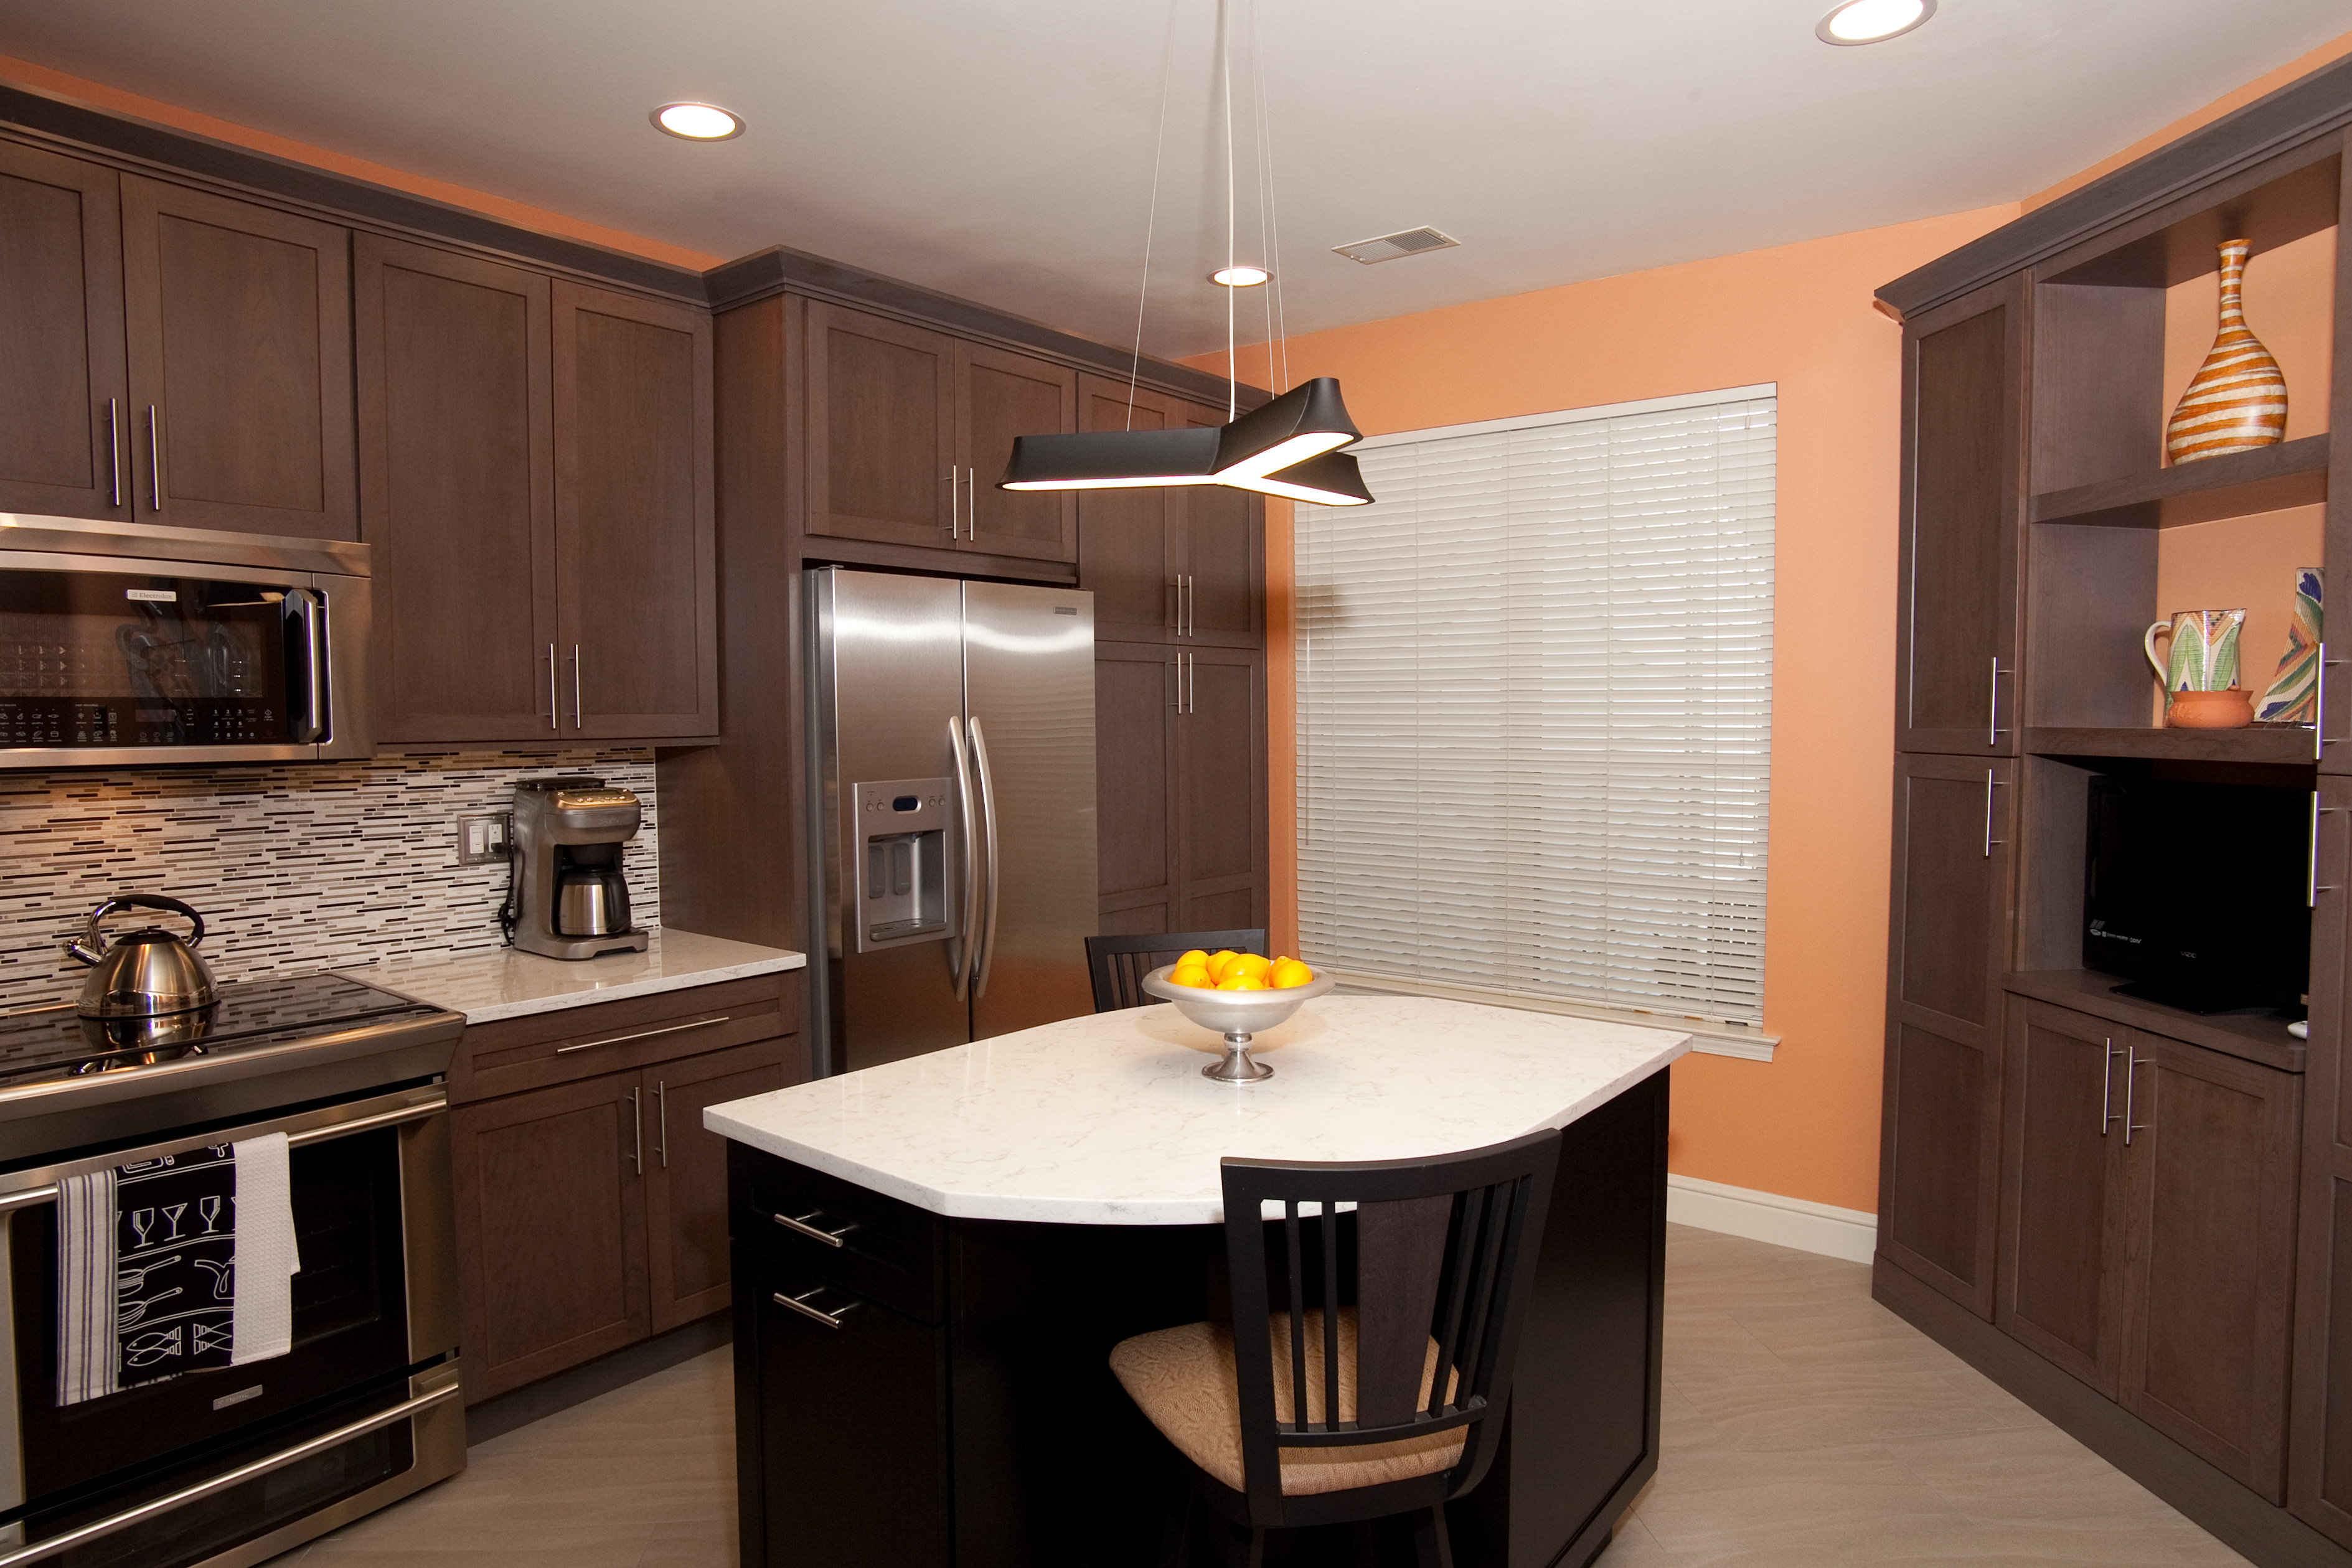 New York Kitchen Remodeling Kitchen Bathroom Remodeling Plumbing Heating Port Jervis